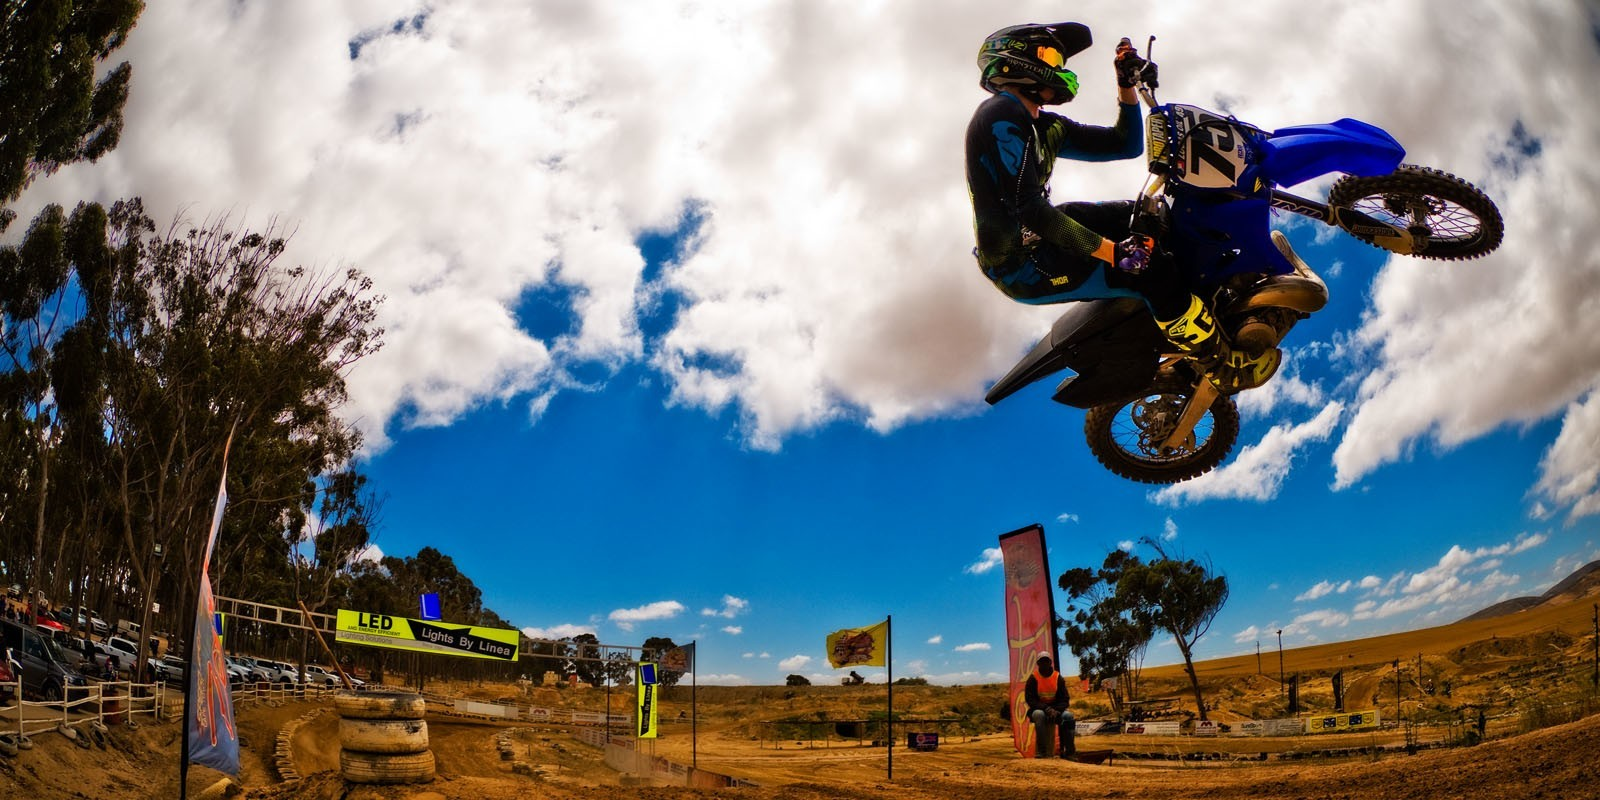 Tristan Purdon | Warming up for the King of the Whip eventPending to link to legal document once we receive the fully executed agreement.